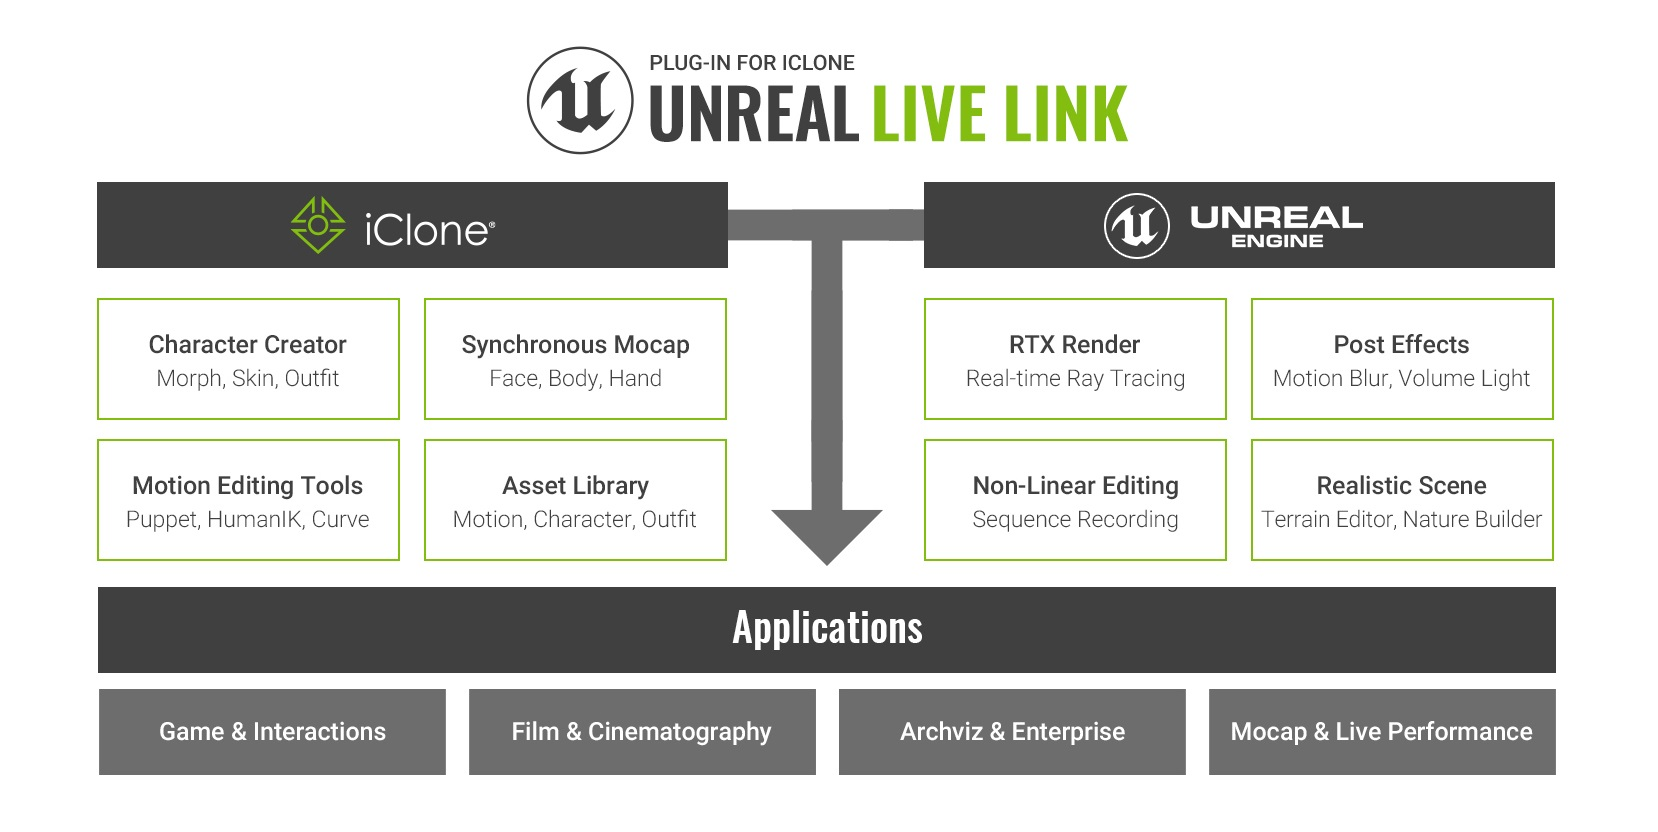 Unreal Live Link Plug-in is Coming! Want to Get it for FREE?